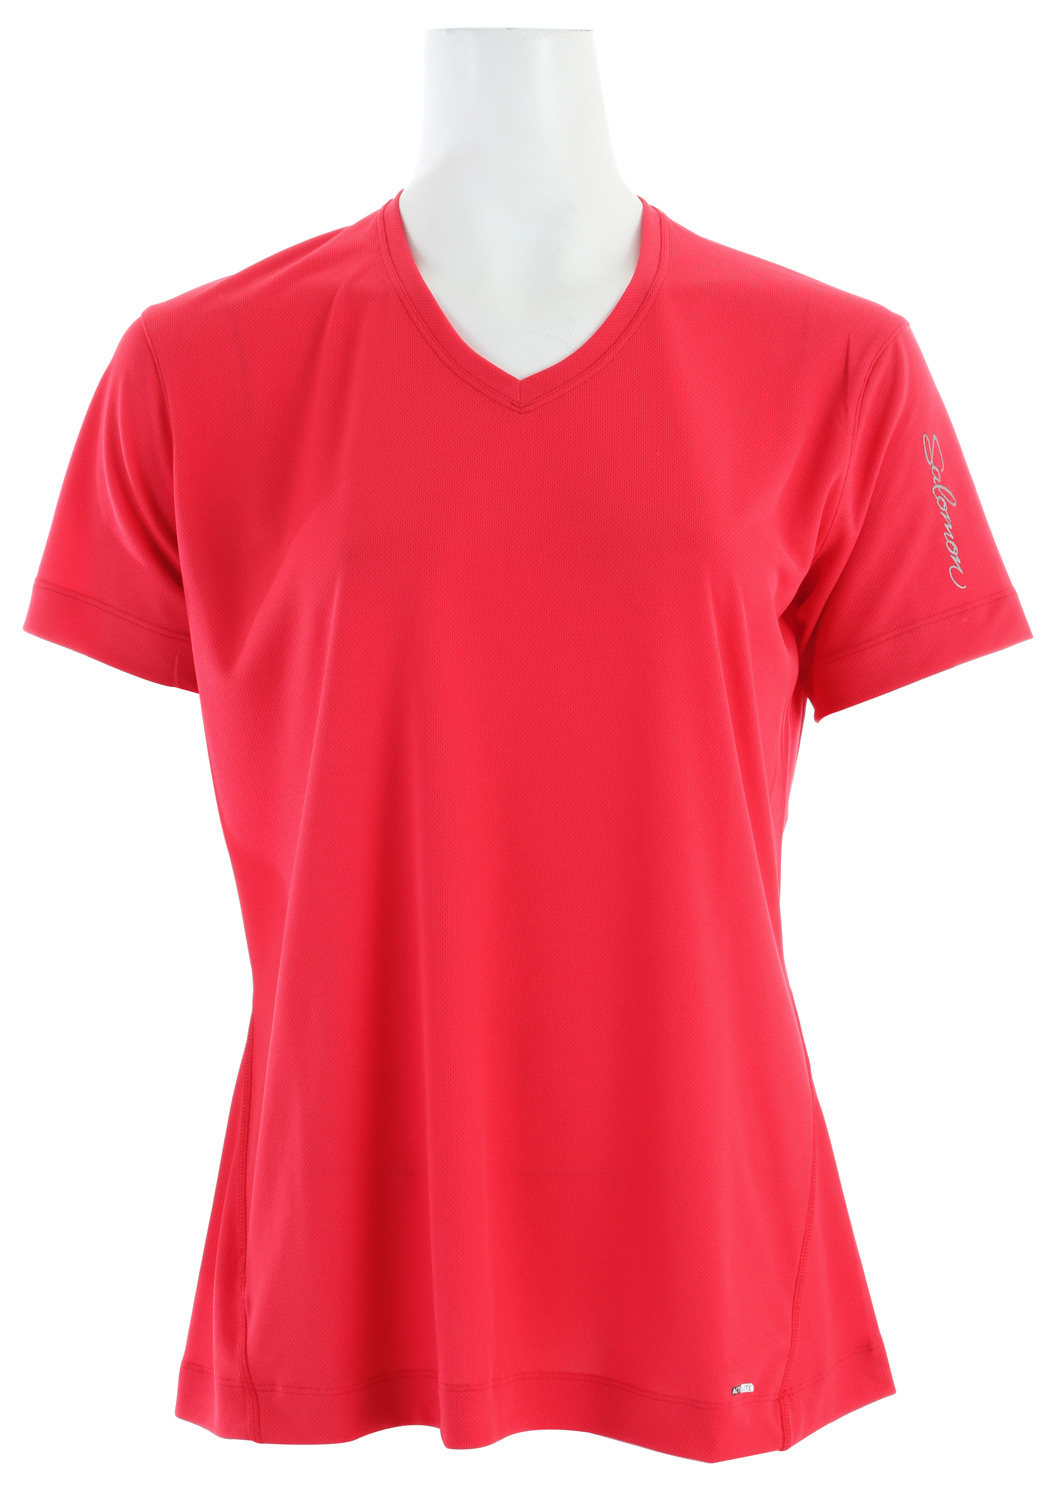 Fitness Relaxed fitting, wicking T-shirt for running or outdoor sports in warm weather.Key Features of the Salomon X T-Shirt: Actilite poly mock eylet Reflective branding Flatlock seams Body: PES 100% Relax fit 90g - $17.95